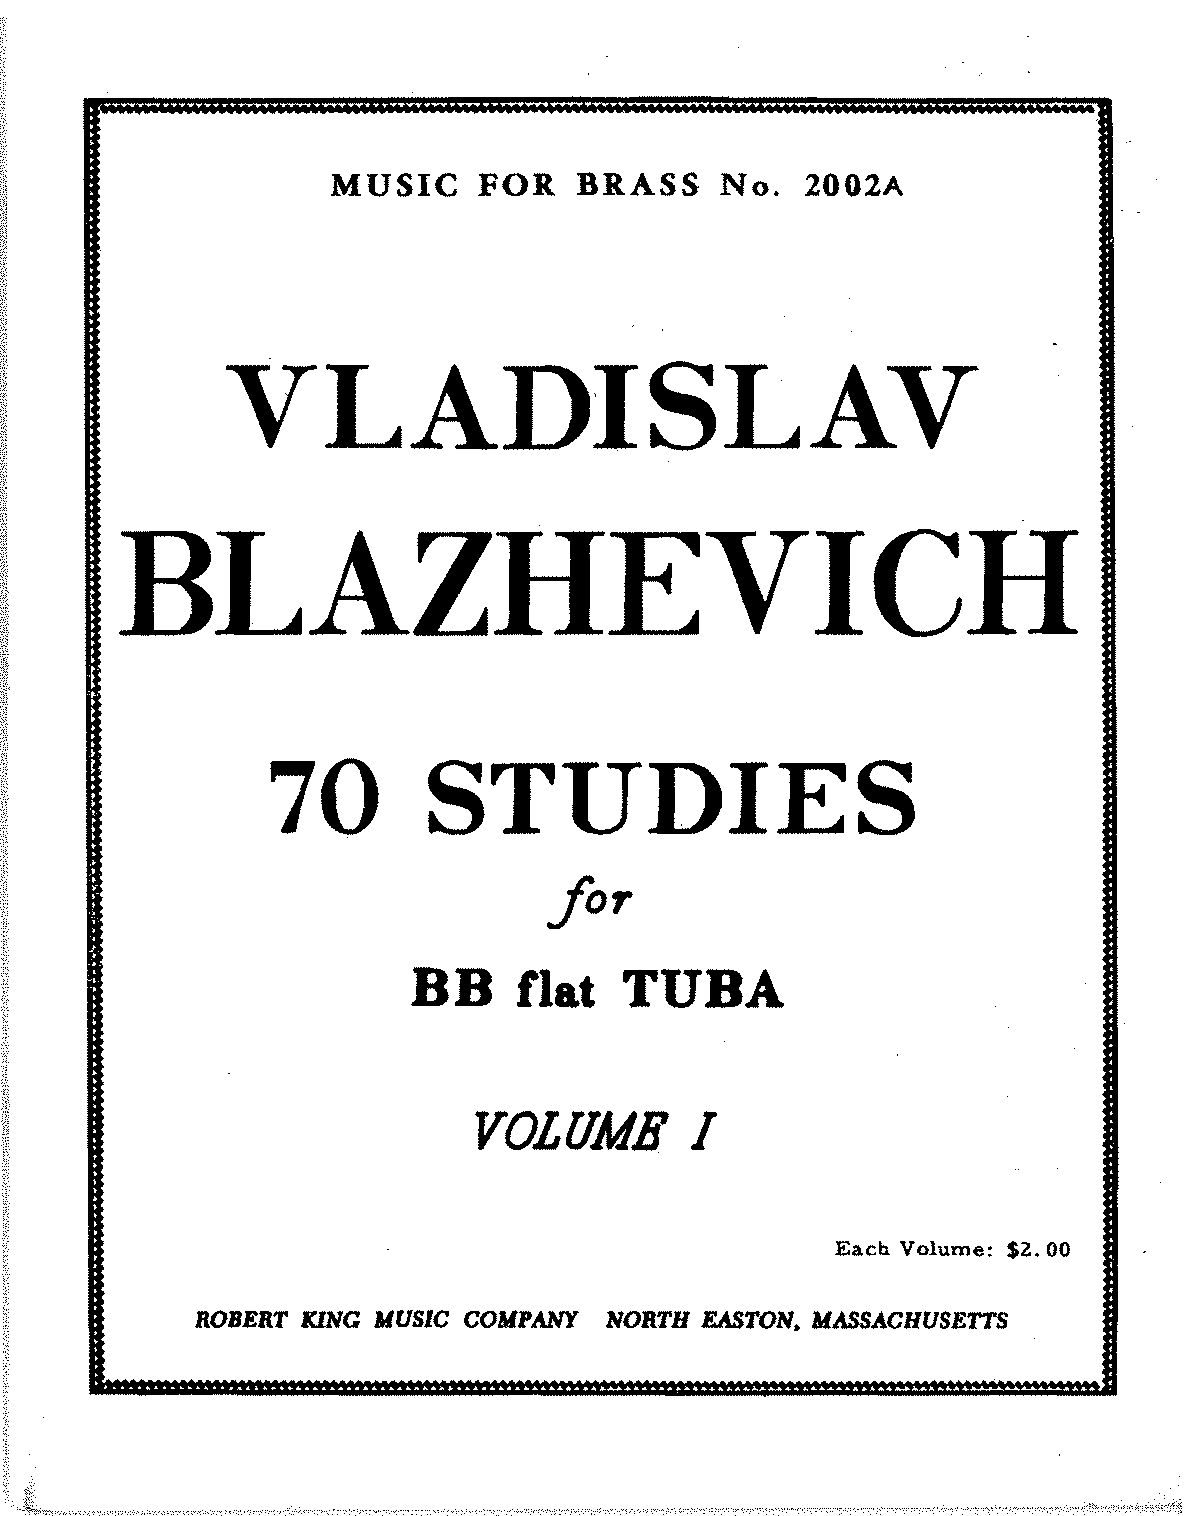 PMLP460722-Blazhevich 70-Studies-for-Bb-tuba vlm1.pdf